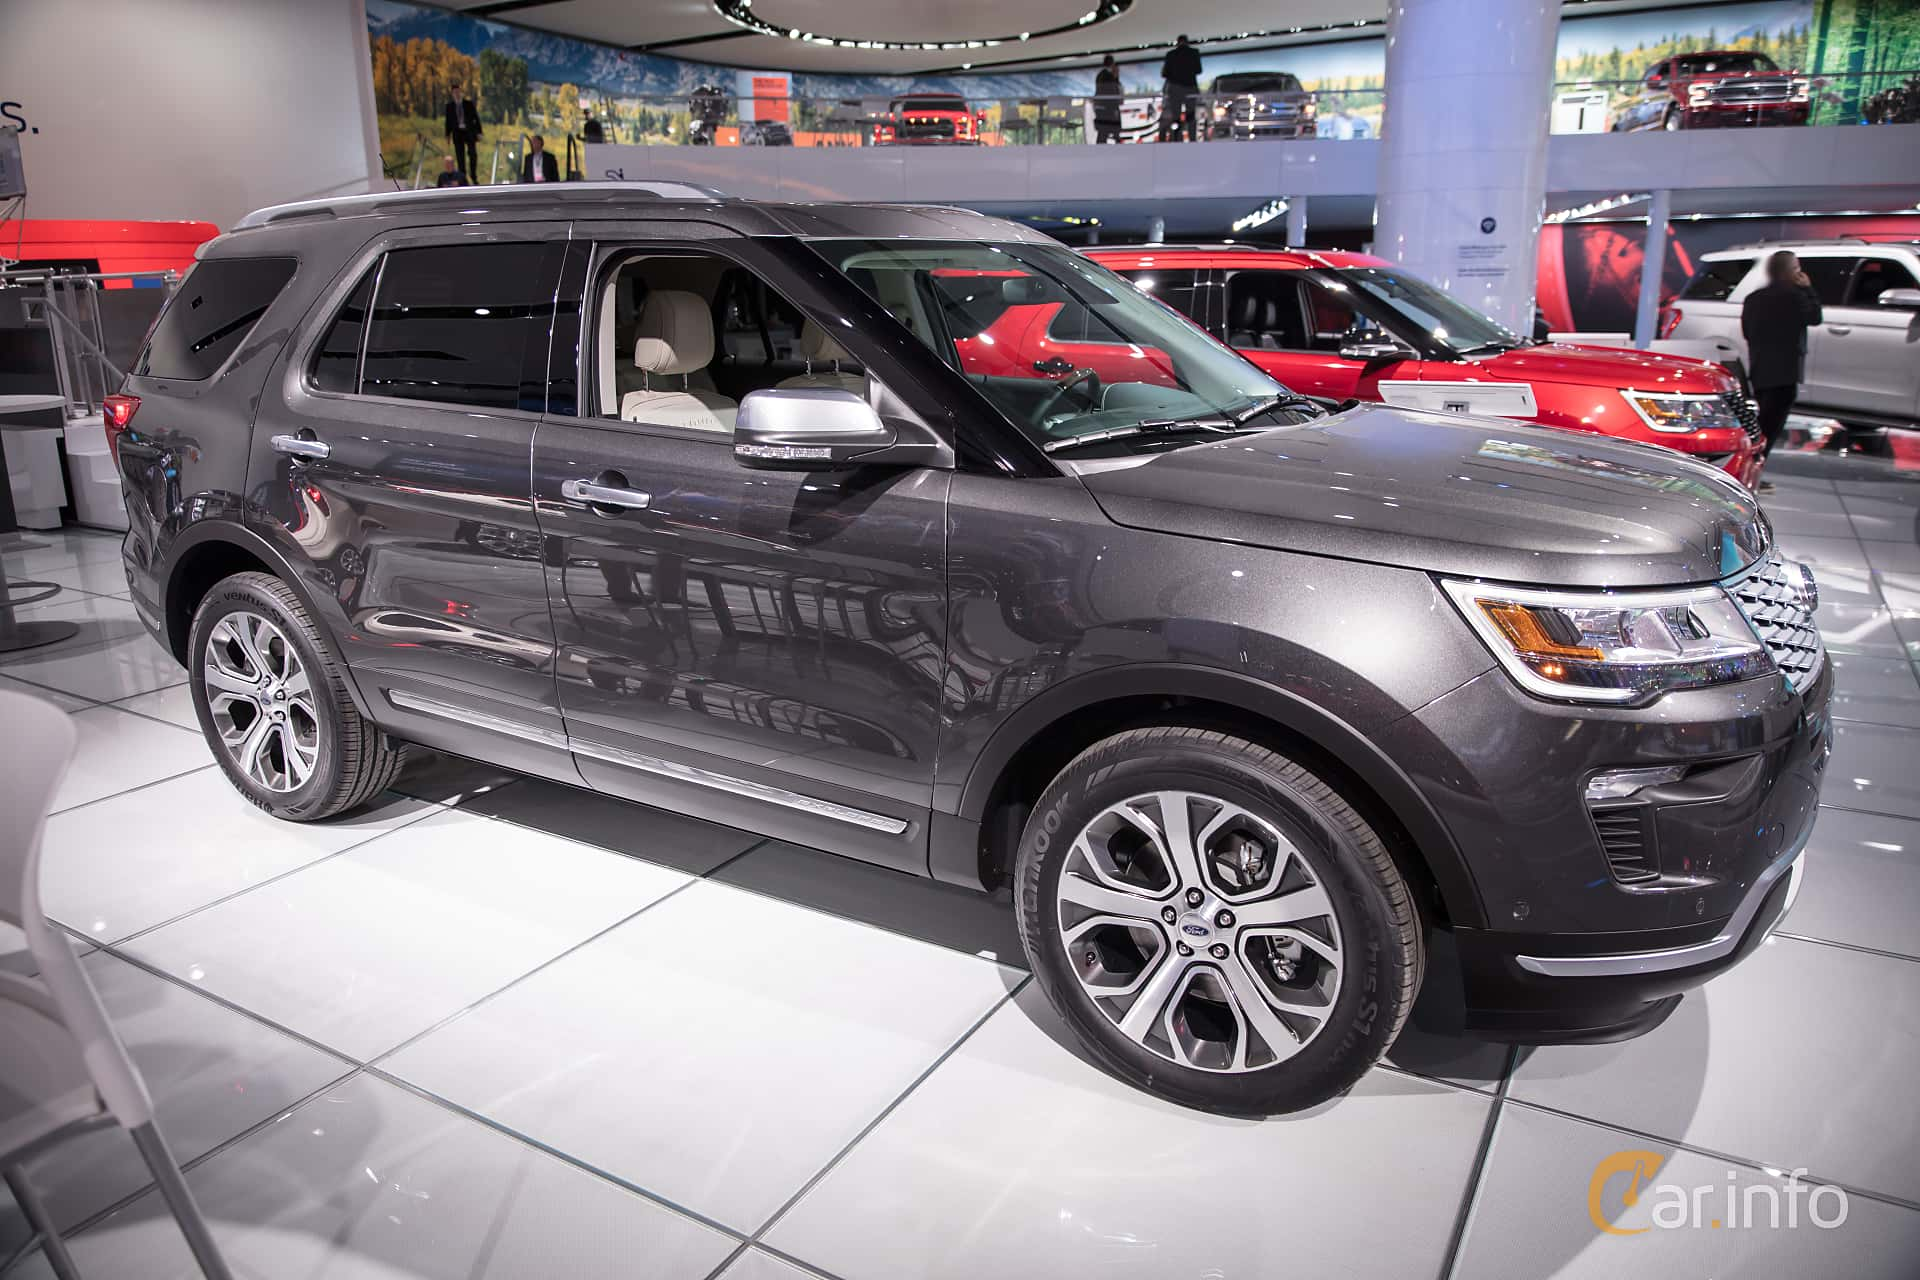 Ford Explorer 3.5 V6 Ecoboost 4x4 SelectShift, 370hp, 2018 at North American International Auto Show 2018